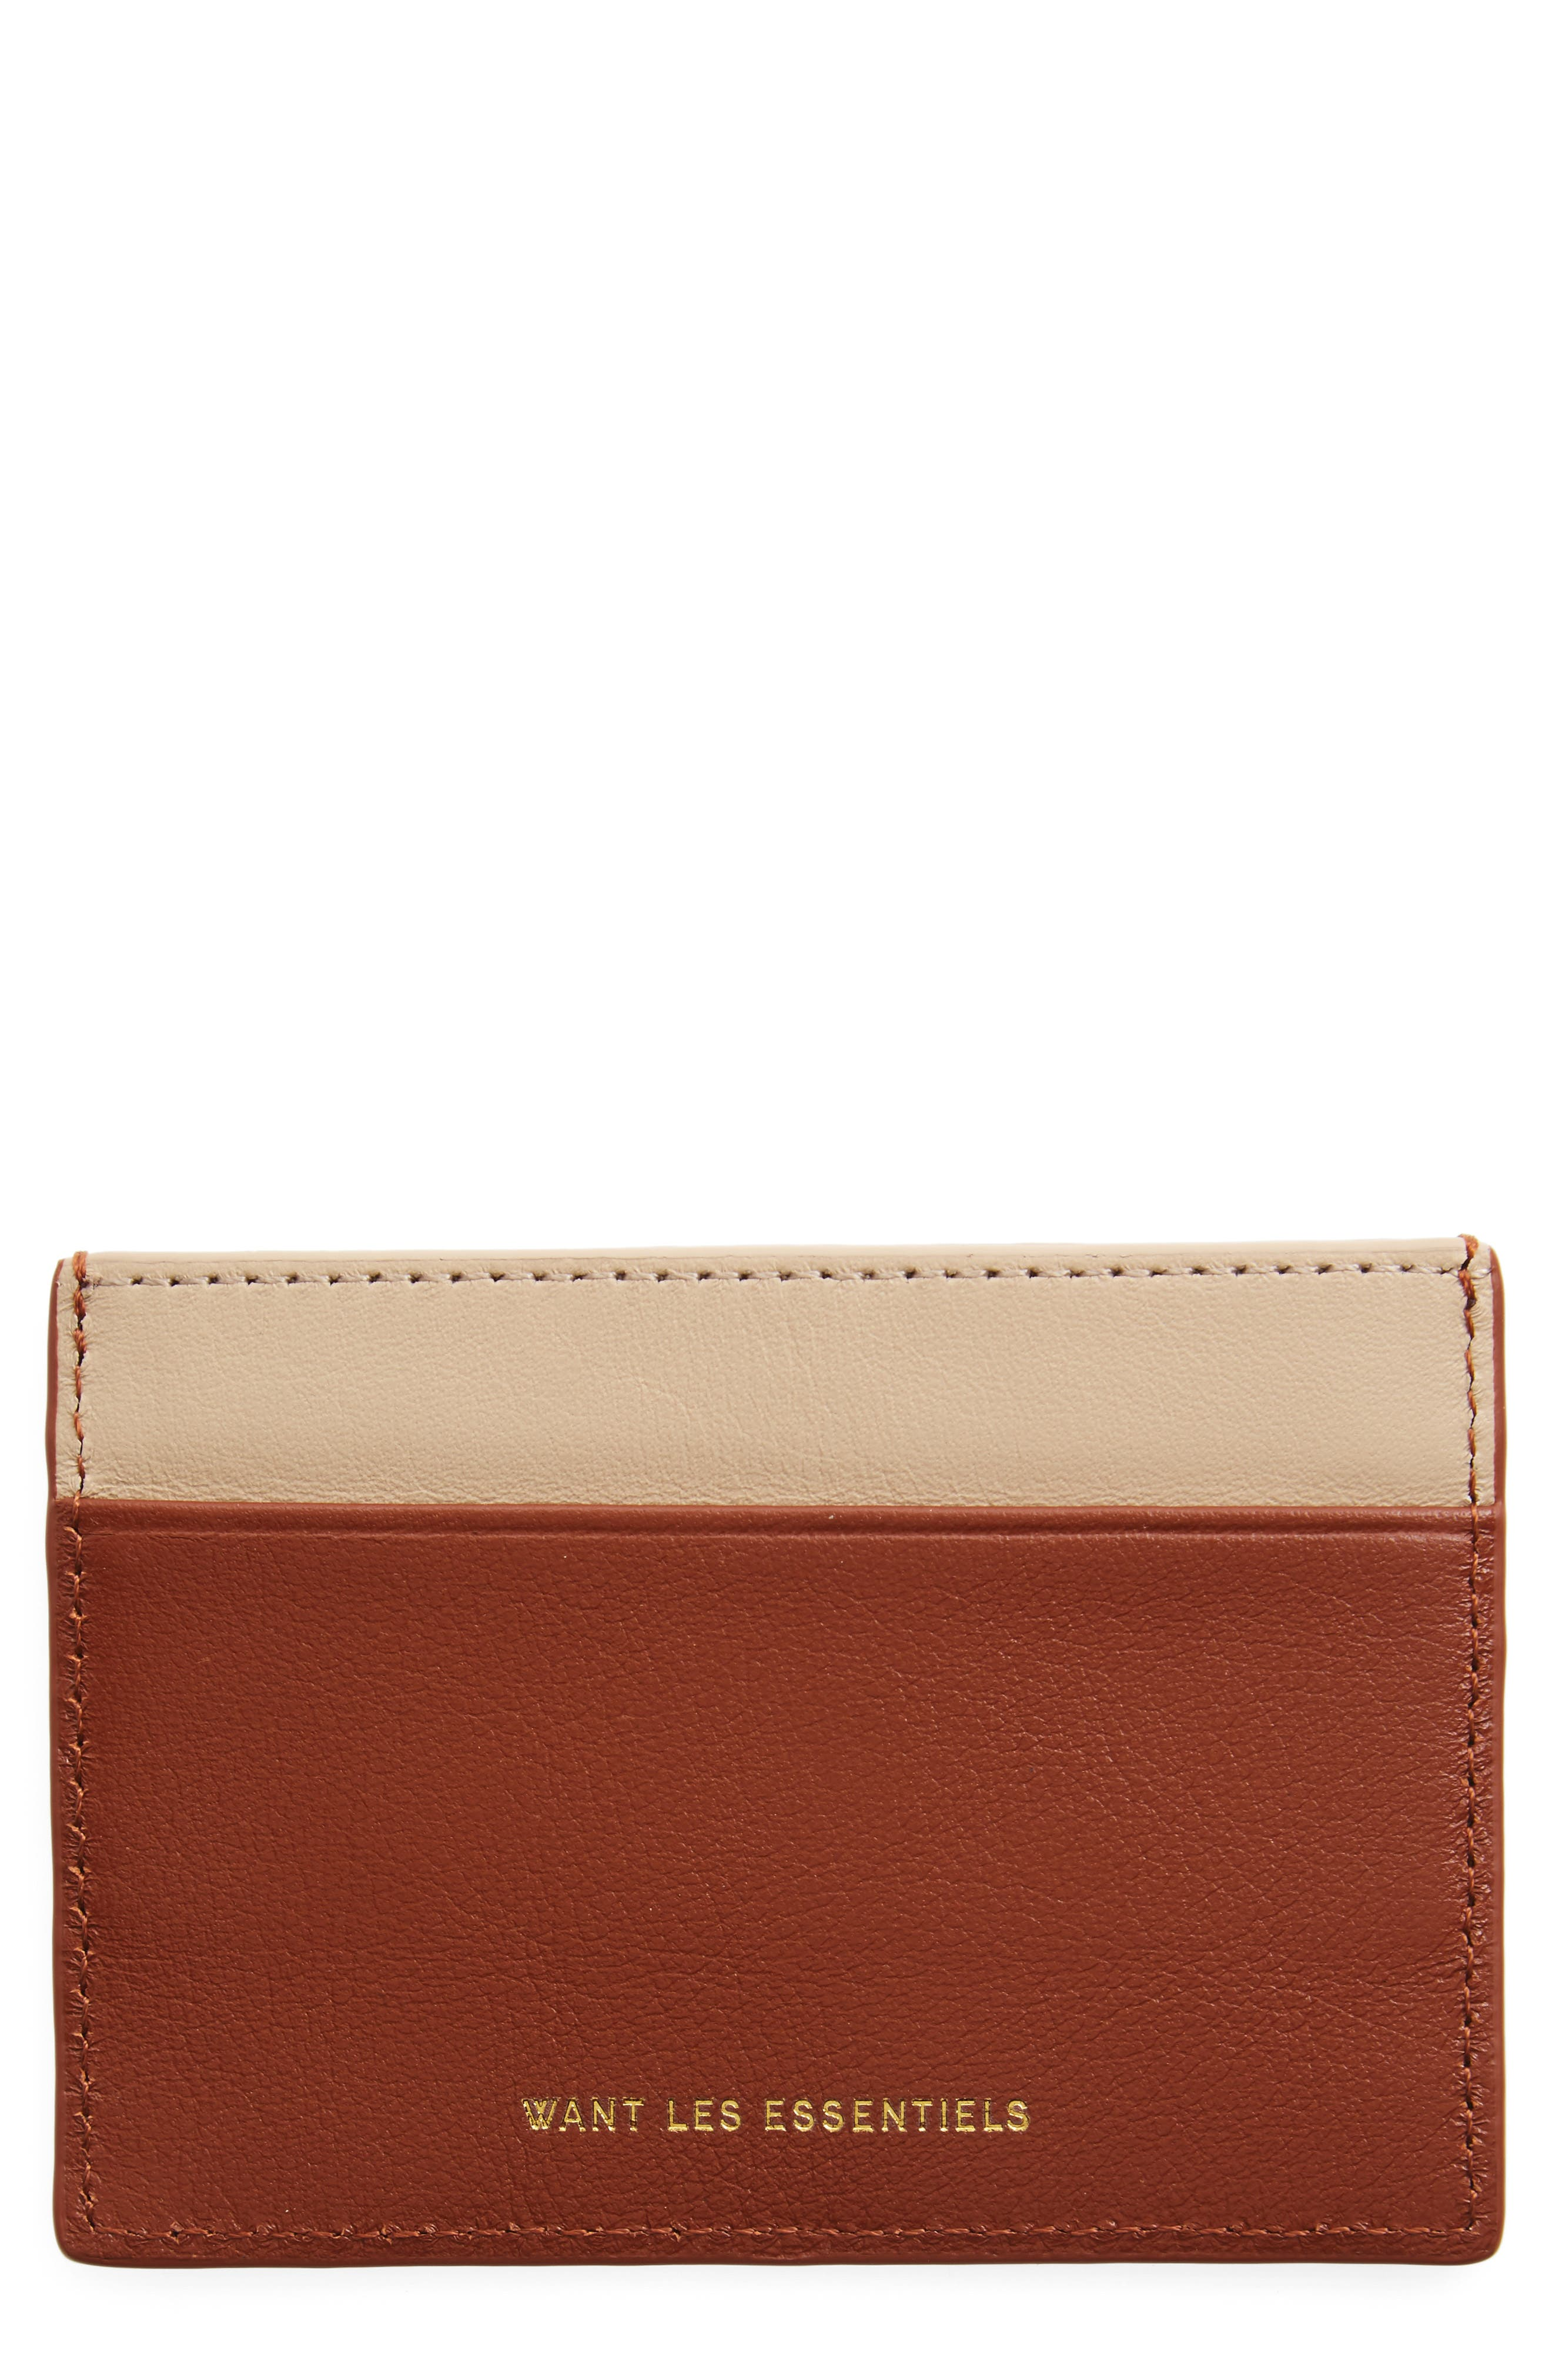 WANT LES ESSENTIELS Branson Leather Card